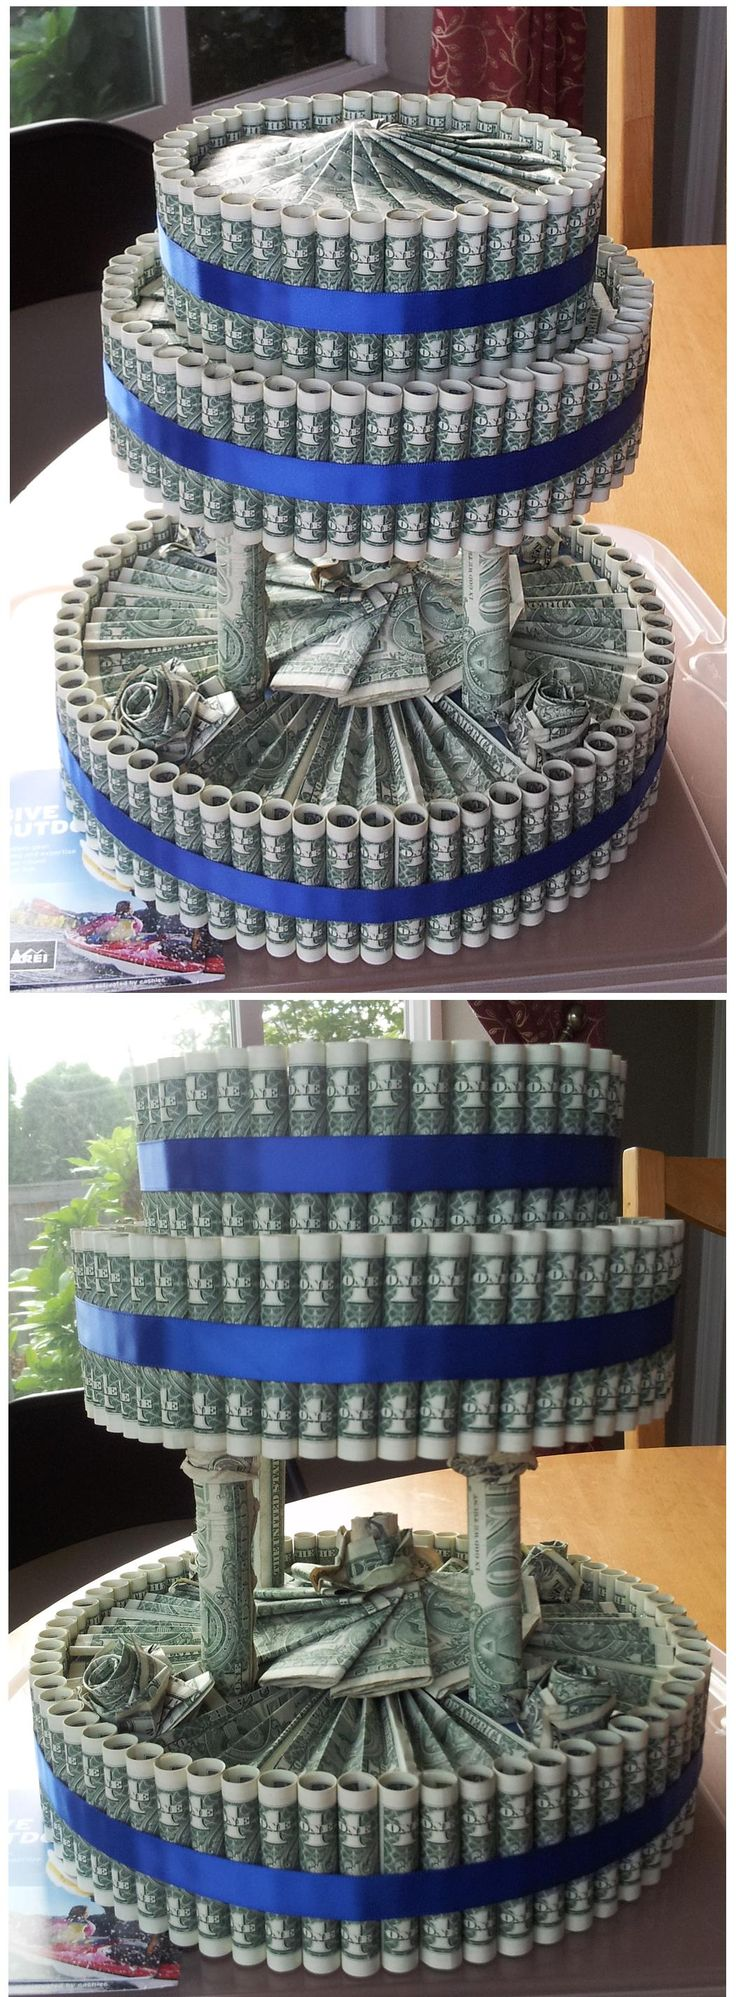 Tiered Money Cake - I made this for a friend's wedding, a classy and clever way to gift money.  I assembled the cake on the lid of a clear storage bin then inverted the bottom and closed it up to present the gift in it's own transparent 'cake dome'!